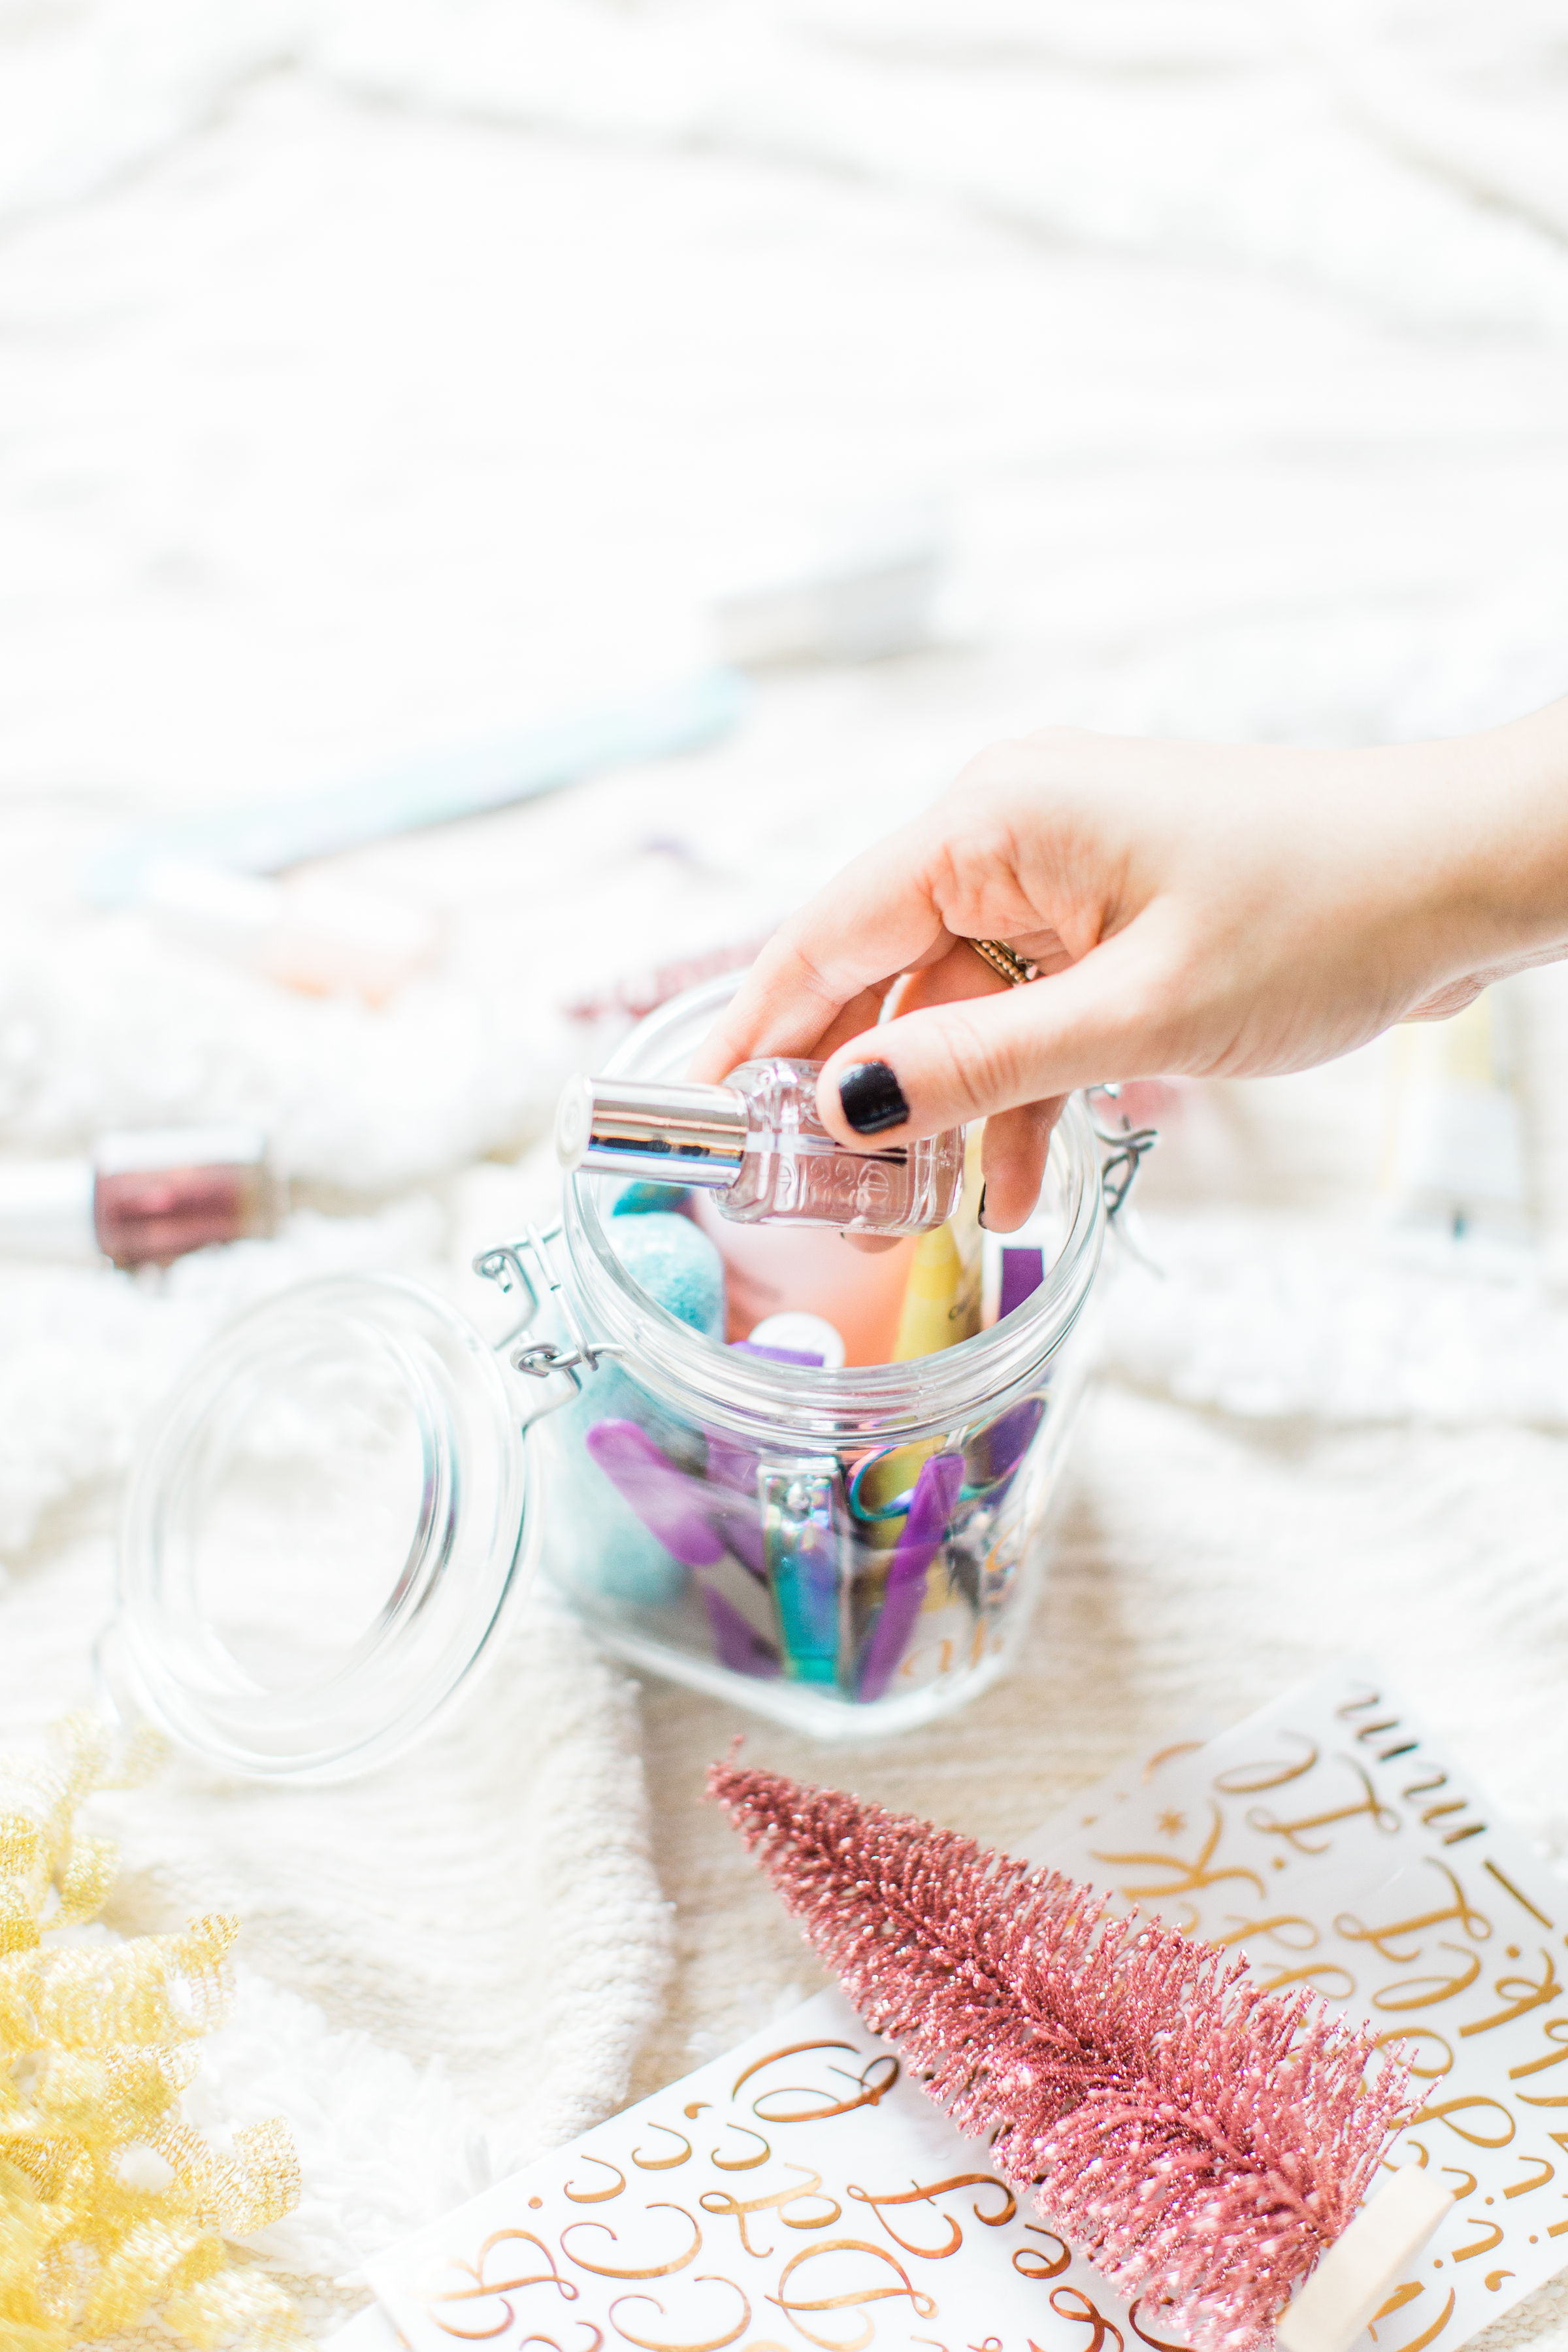 Looking for the perfect easy DIY gift for a friend, teacher, or beauty-lover in your life? I've got the cutest holiday gift idea for you: a DIY pedicure in a jar. Click through for the details. #giftgiving #teachergift #pedicureinajar #holidaydiy #homemadegift #holidaygifting #treatyoself | glitterinc.com | @glitterinc